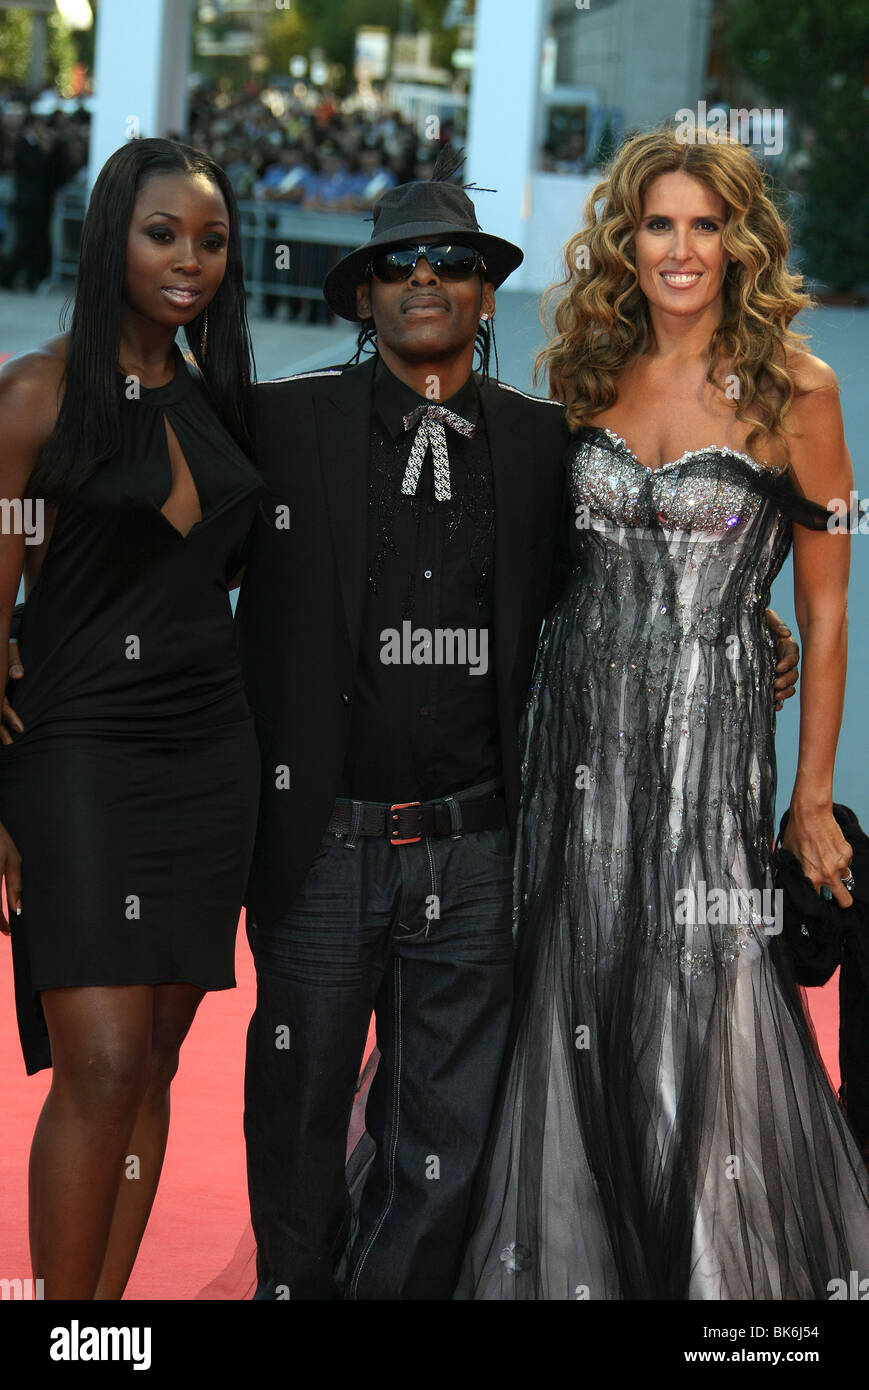 COOLIO & GUESTS TIM BURTON GOLDEN LION LIFE TIME AWARD 64TH VENICE FILM FESTIVAL LIDO VENICE ITALY 05 September - Stock Image